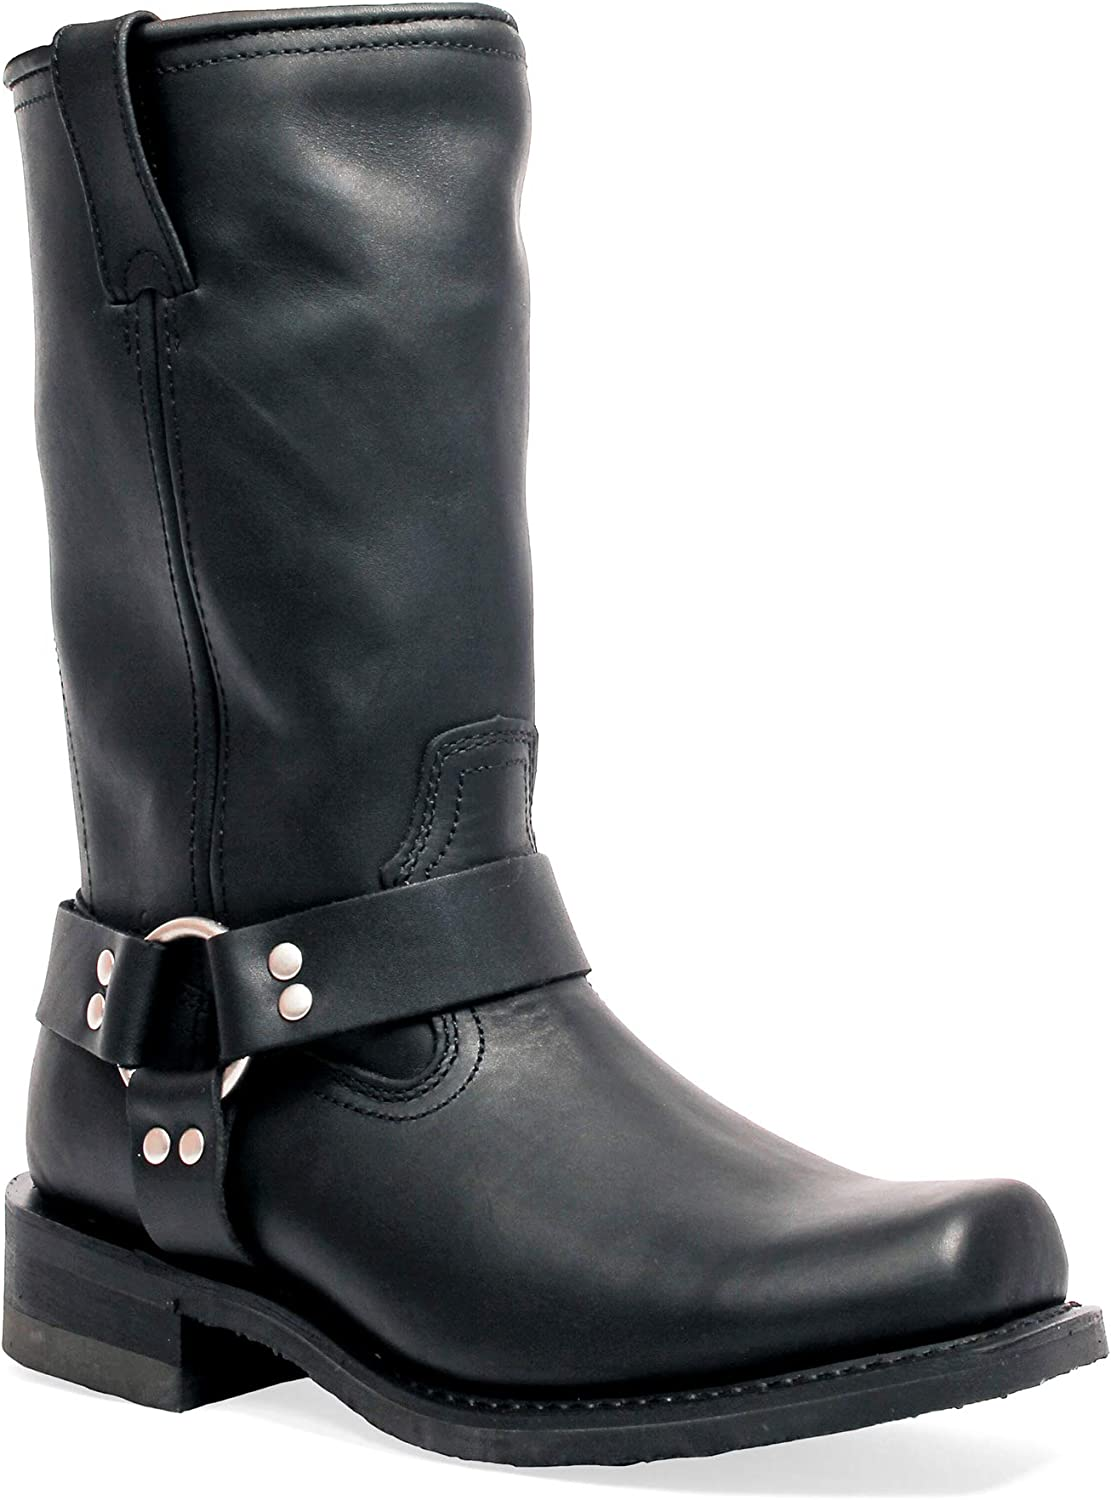 Men's Masterson Black Harness Boot Motorcycle Ranking TOP11 Max 41% OFF Leather